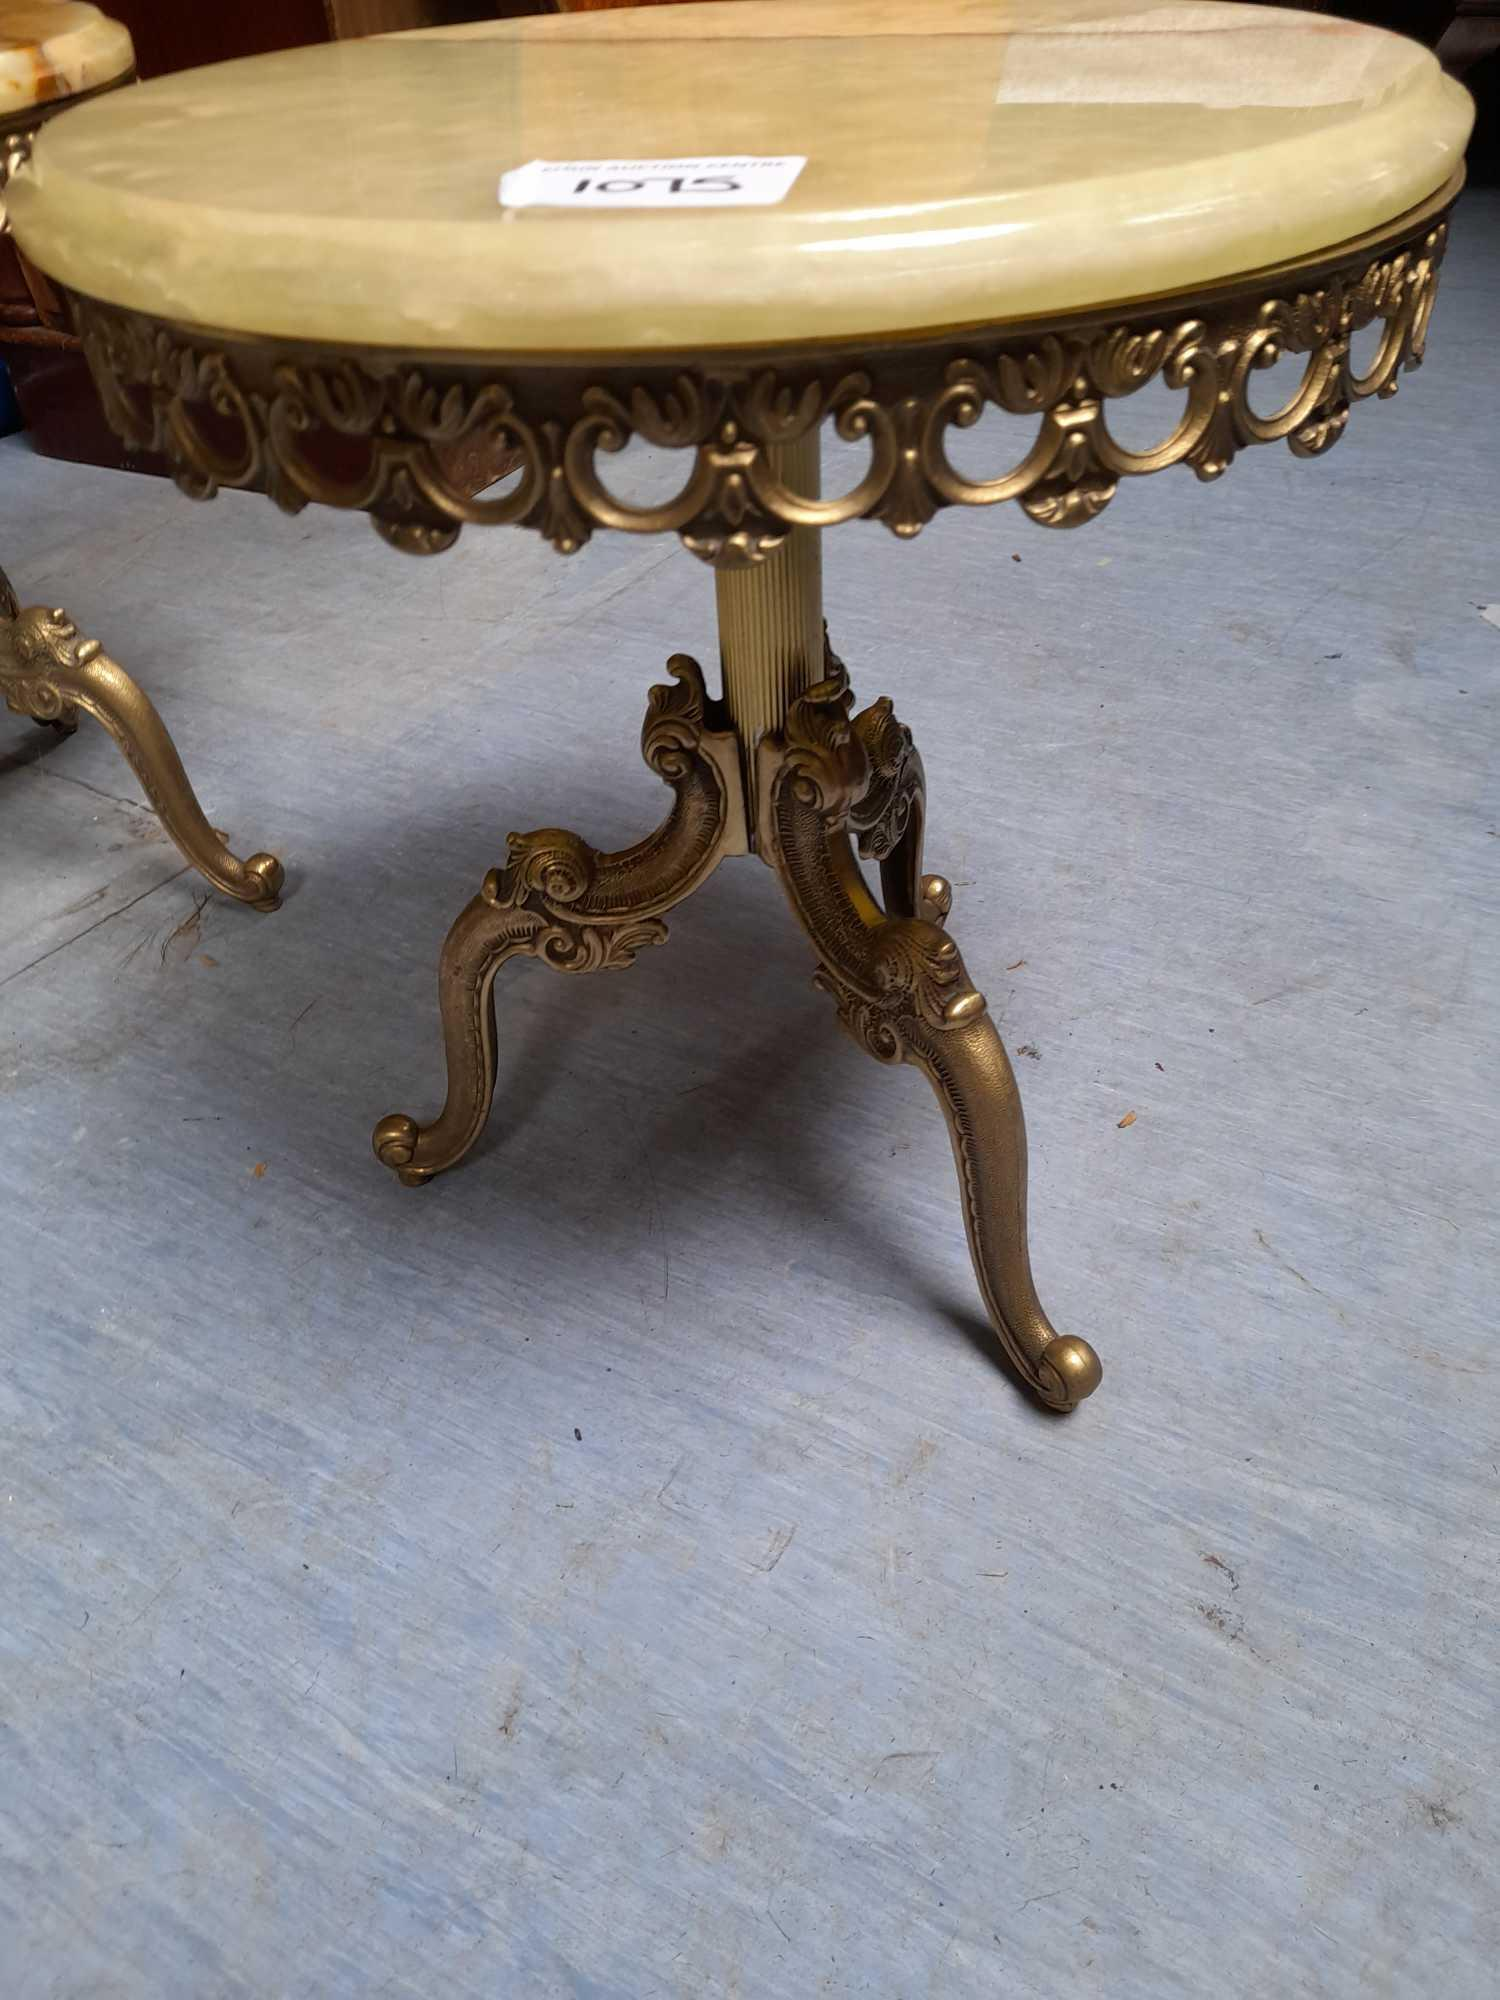 2 SMALL ONYX TABLES - Image 2 of 2